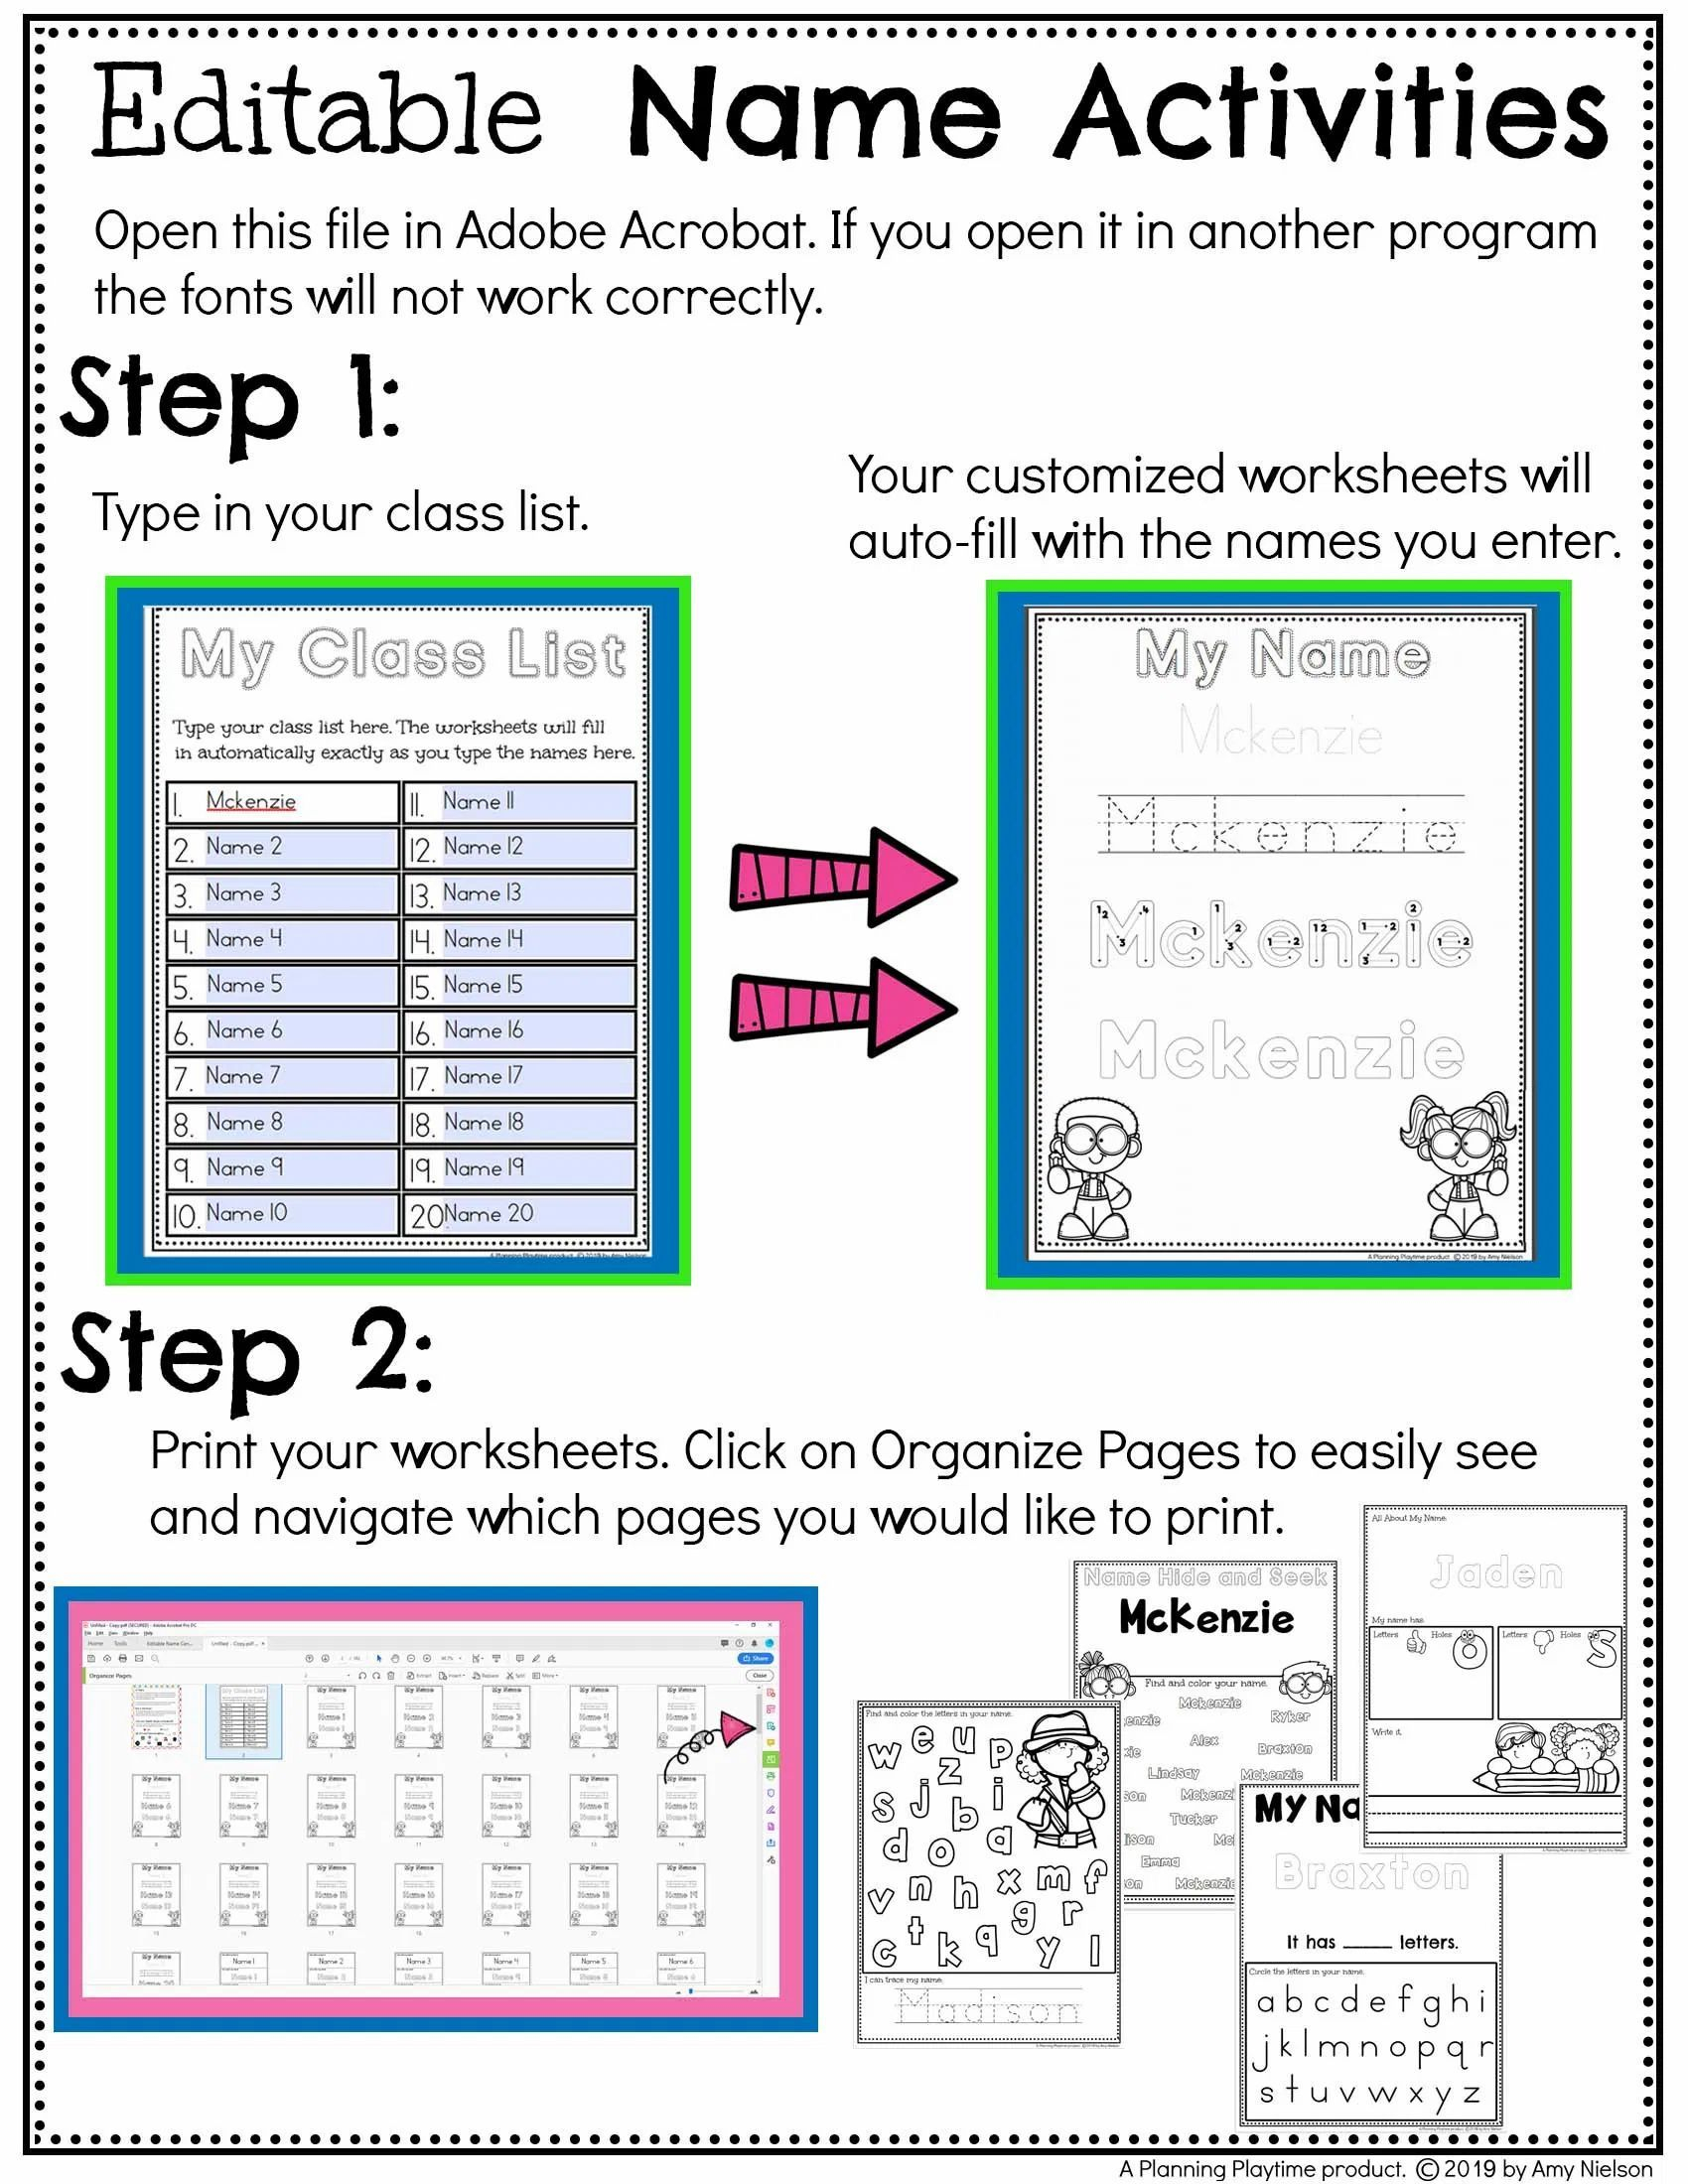 Name Tracing Worksheets And Activities - Editable inside Name Tracing Editable